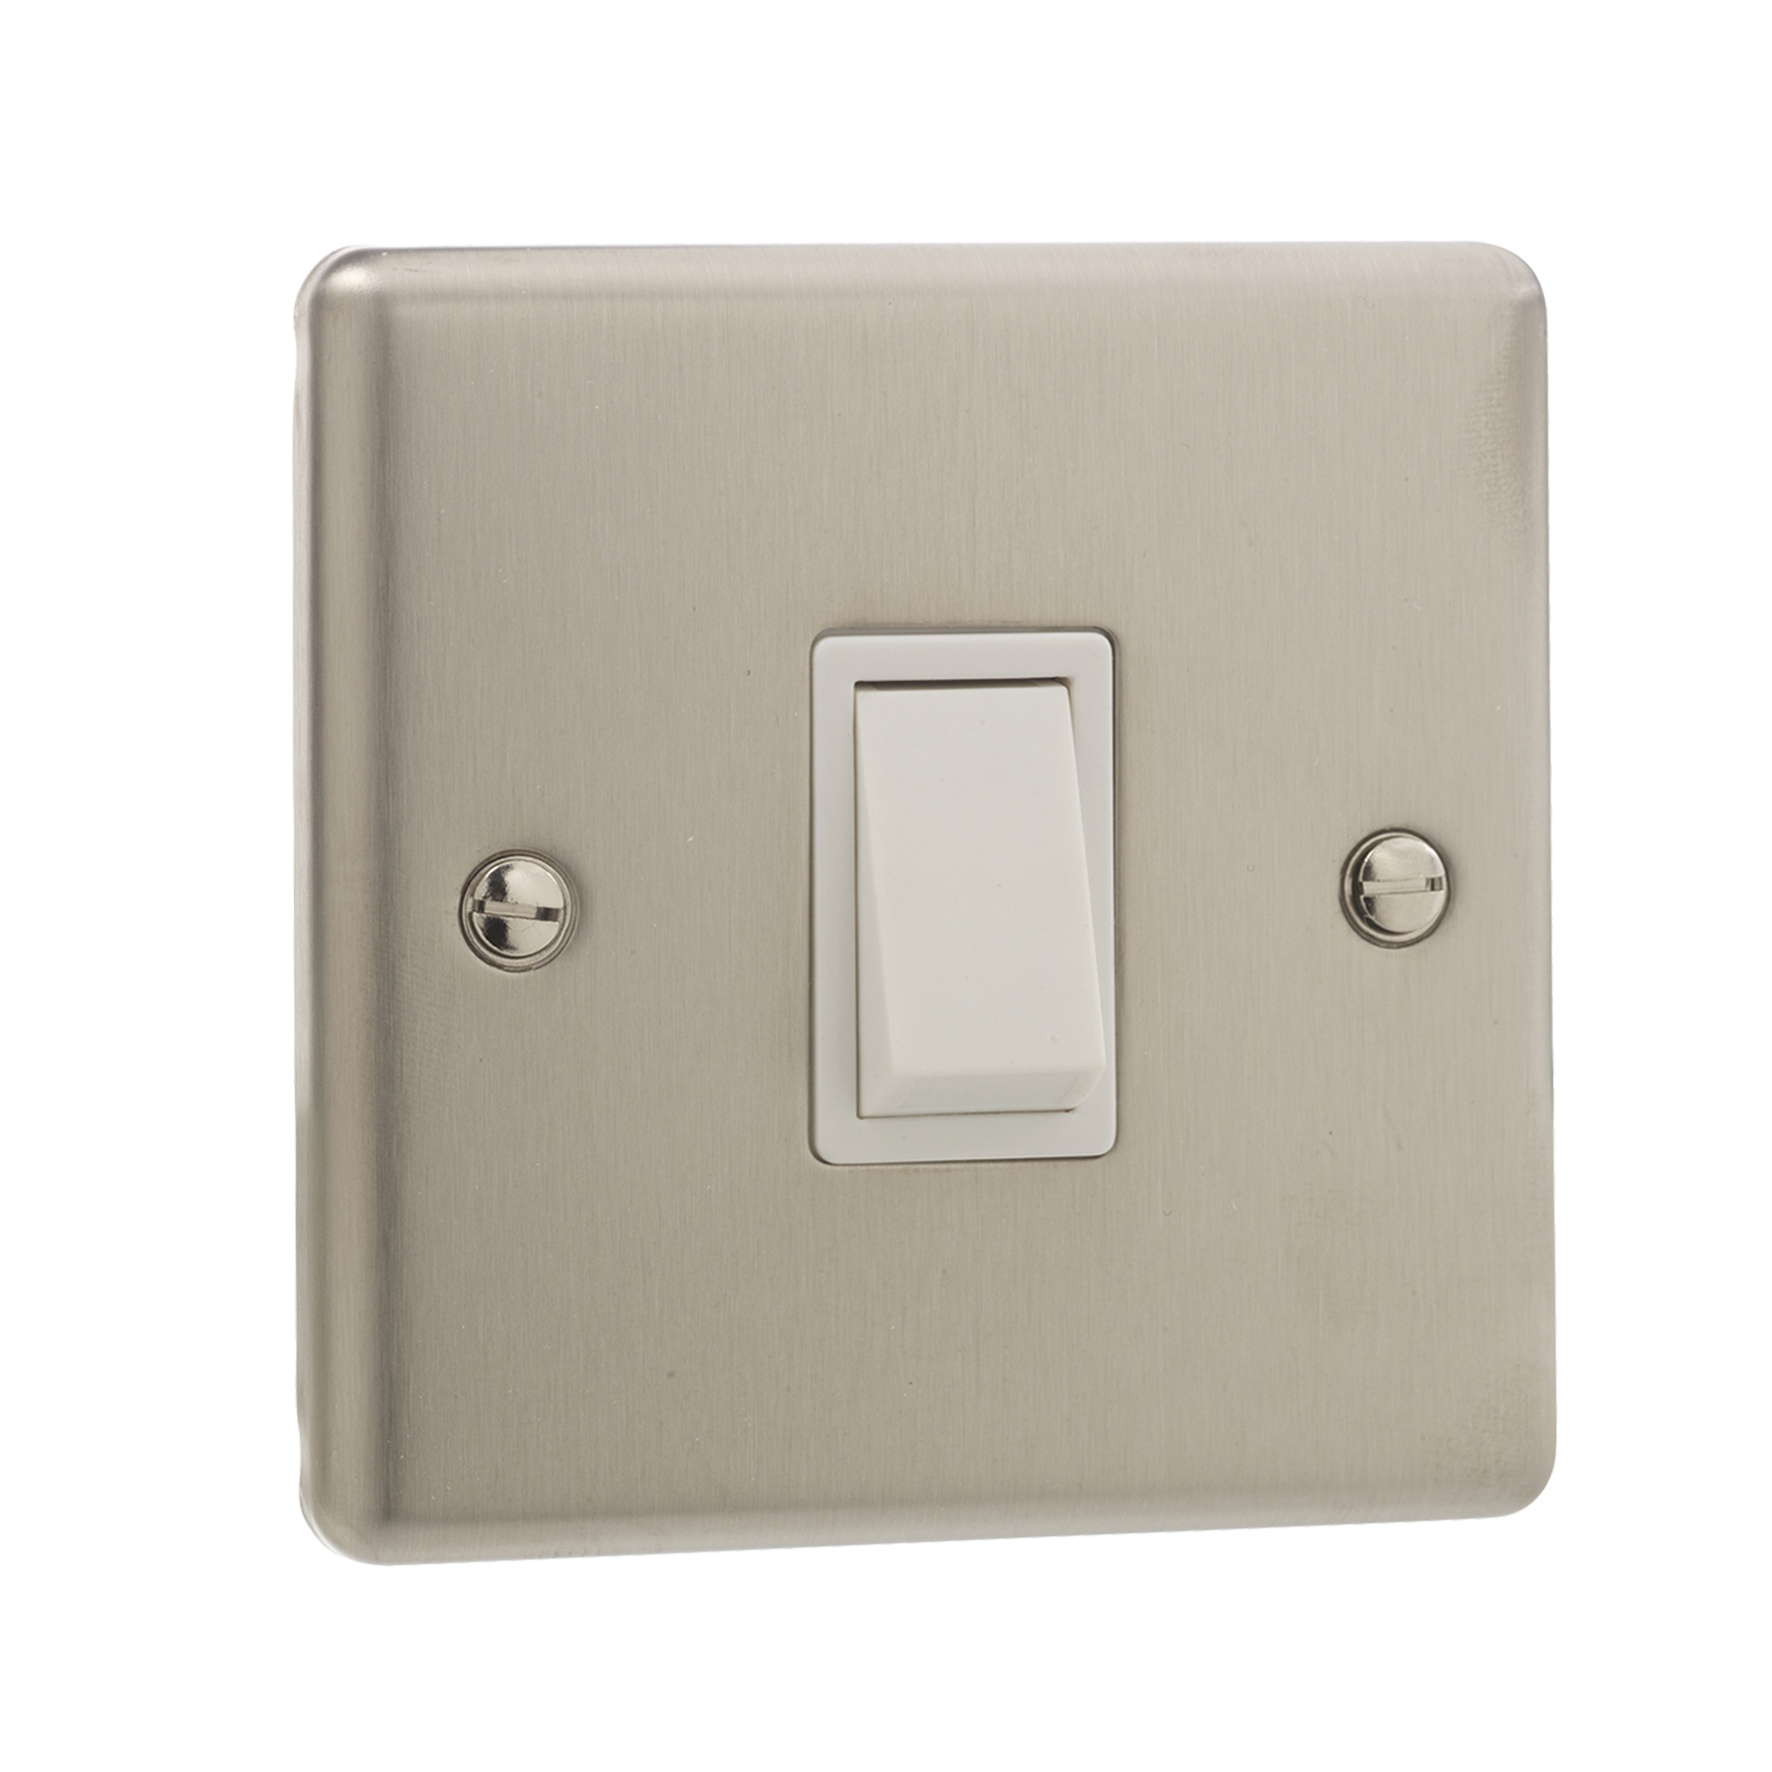 British General Stainless Steel Single 1 Gang Light Switch Double Pole Switches Item Specifics